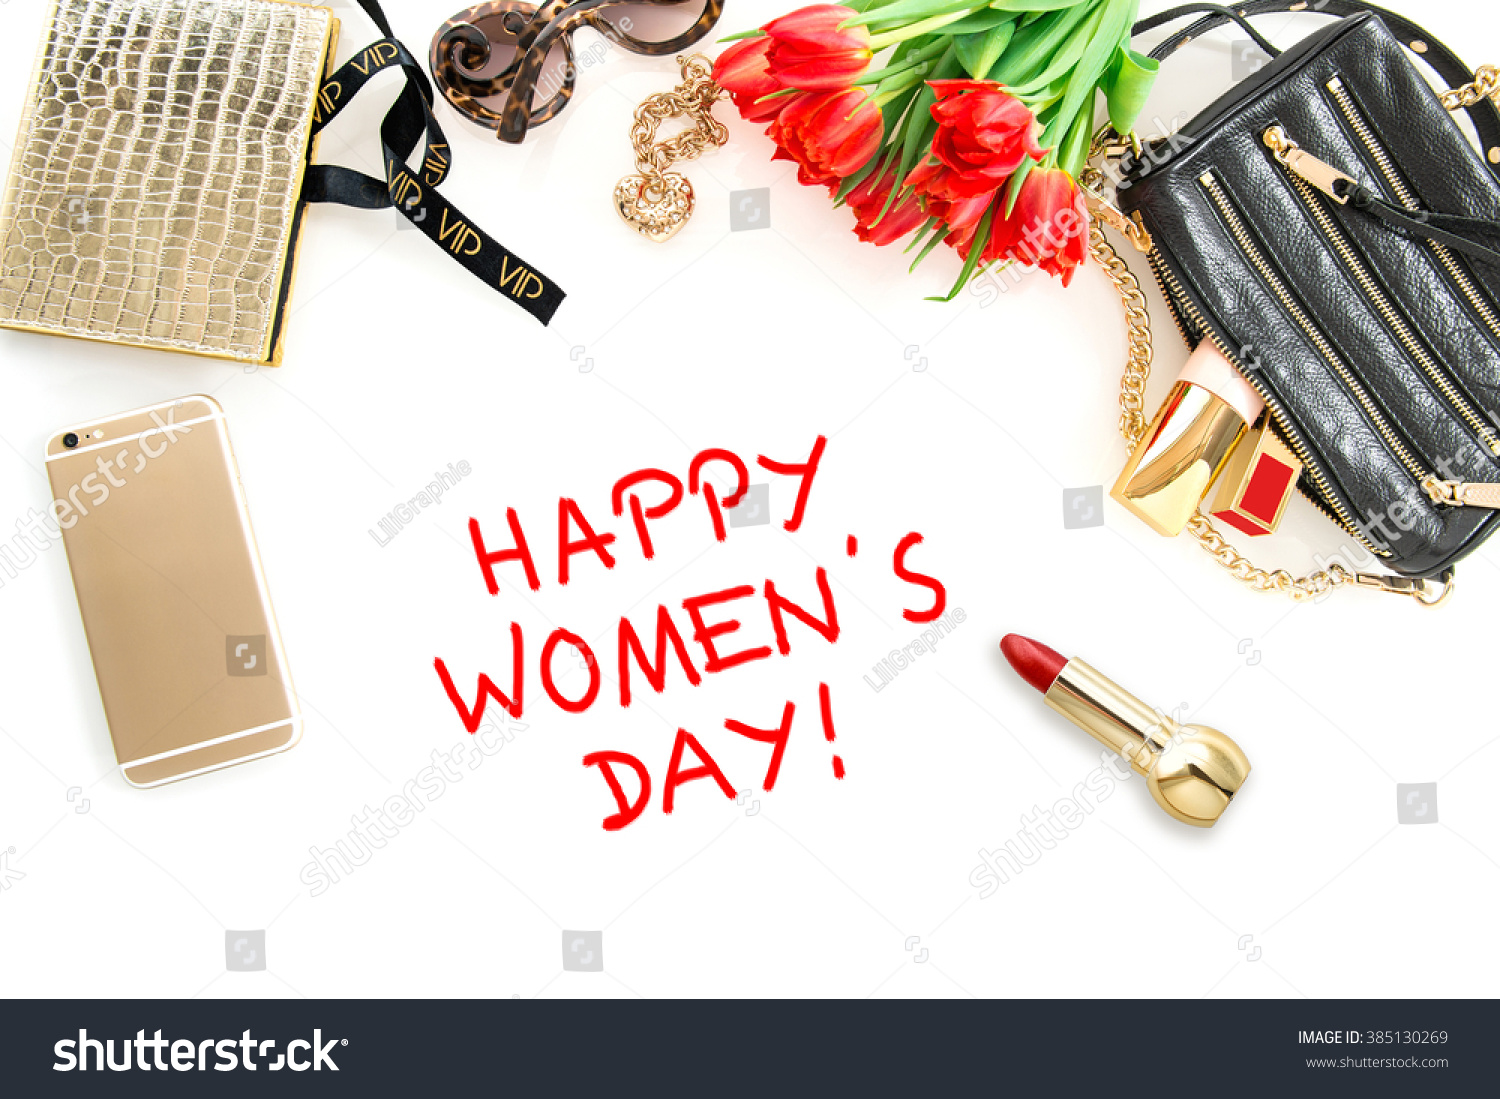 womens fashion and cosmetics essay Here, the most inspiring quotes from the trailblazing feminists who make us proud to be women.